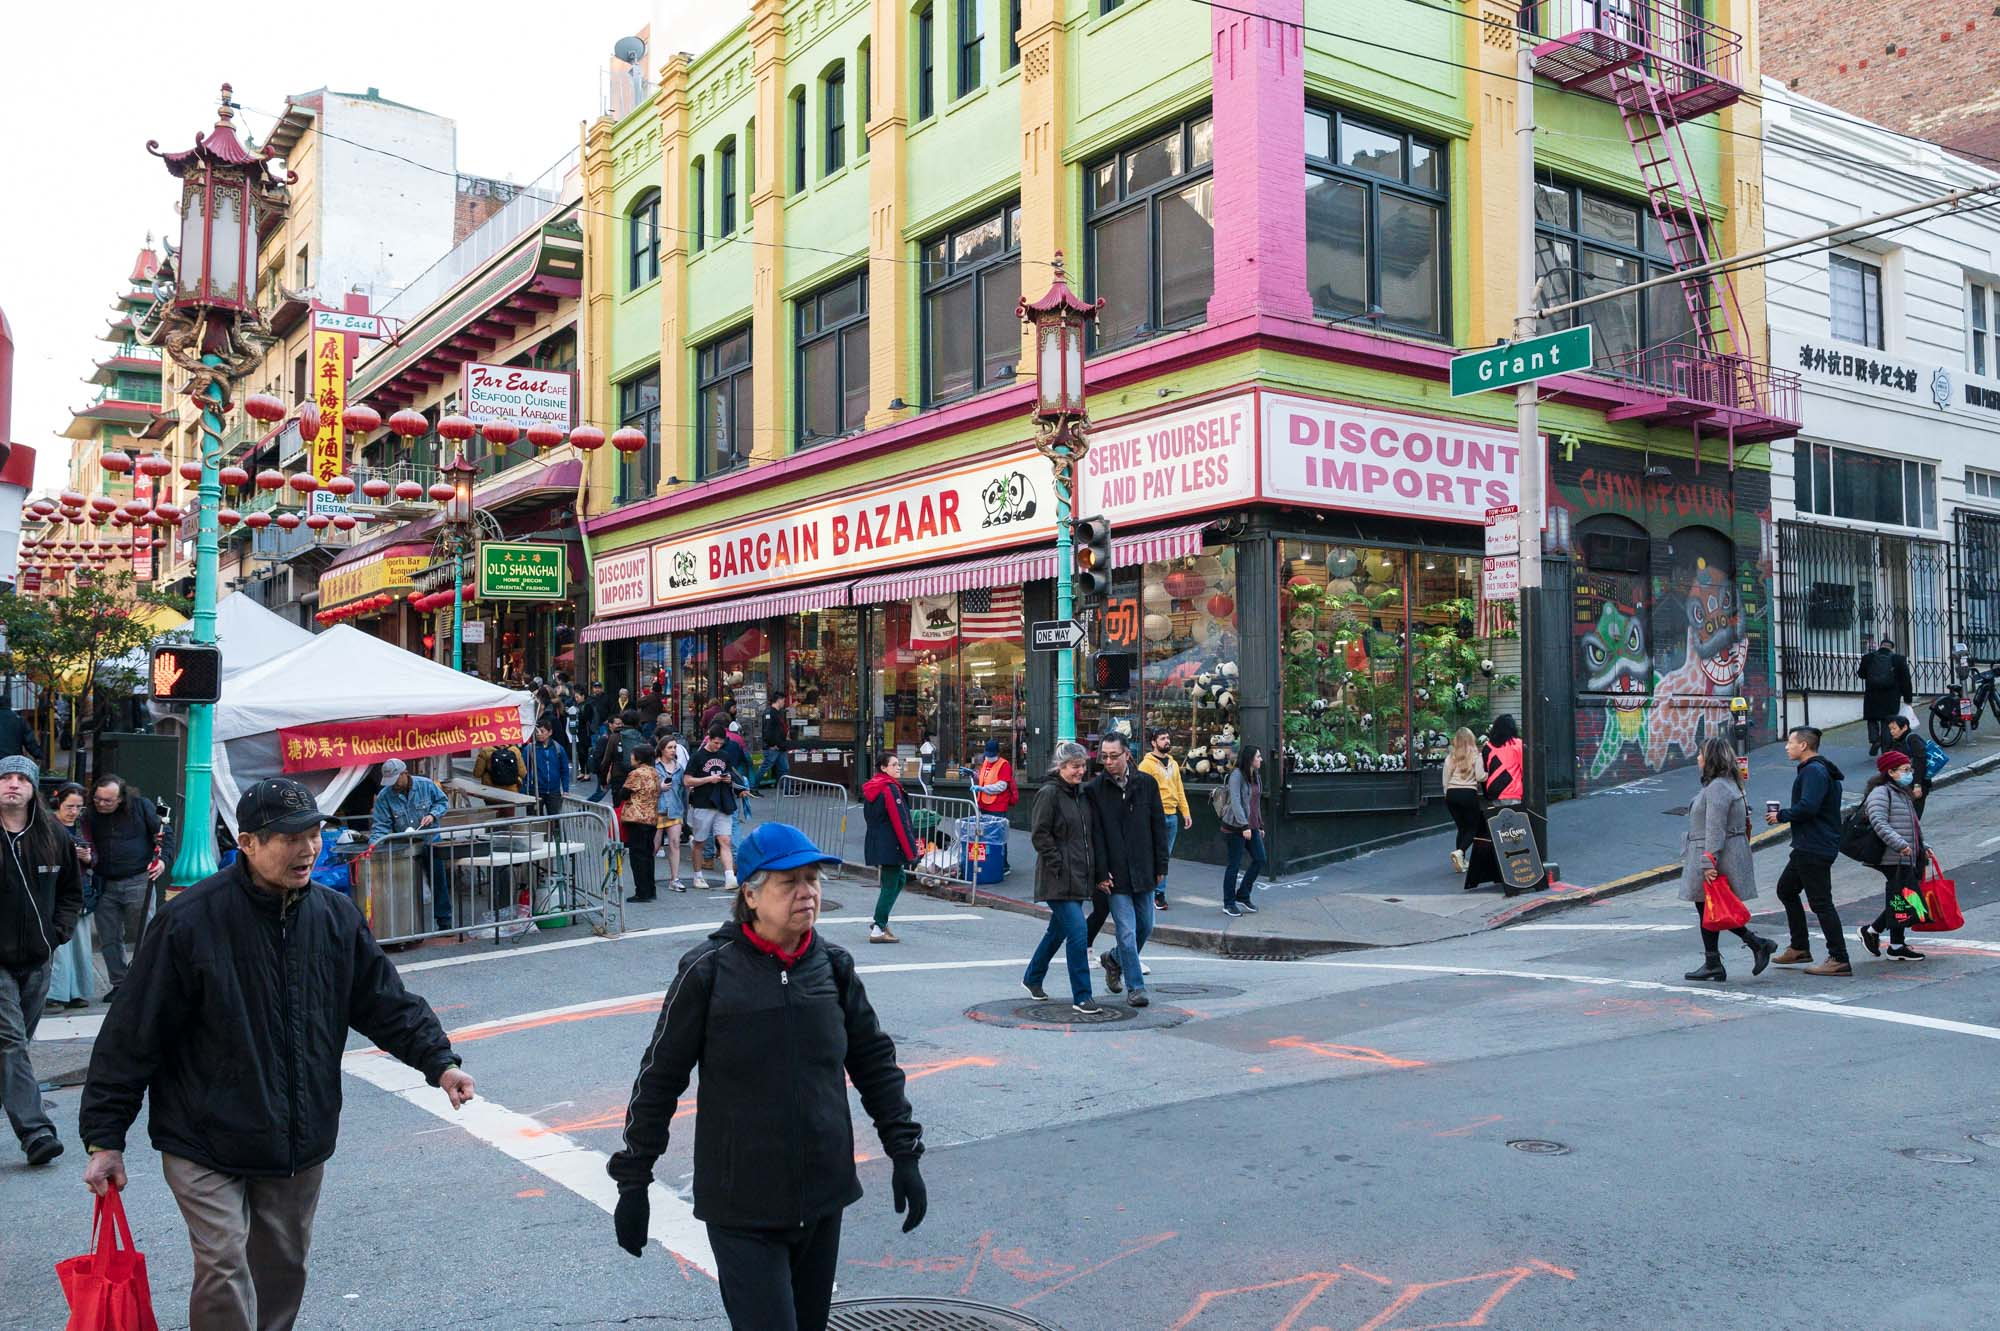 a busy day in San Francisco's Chinatown district